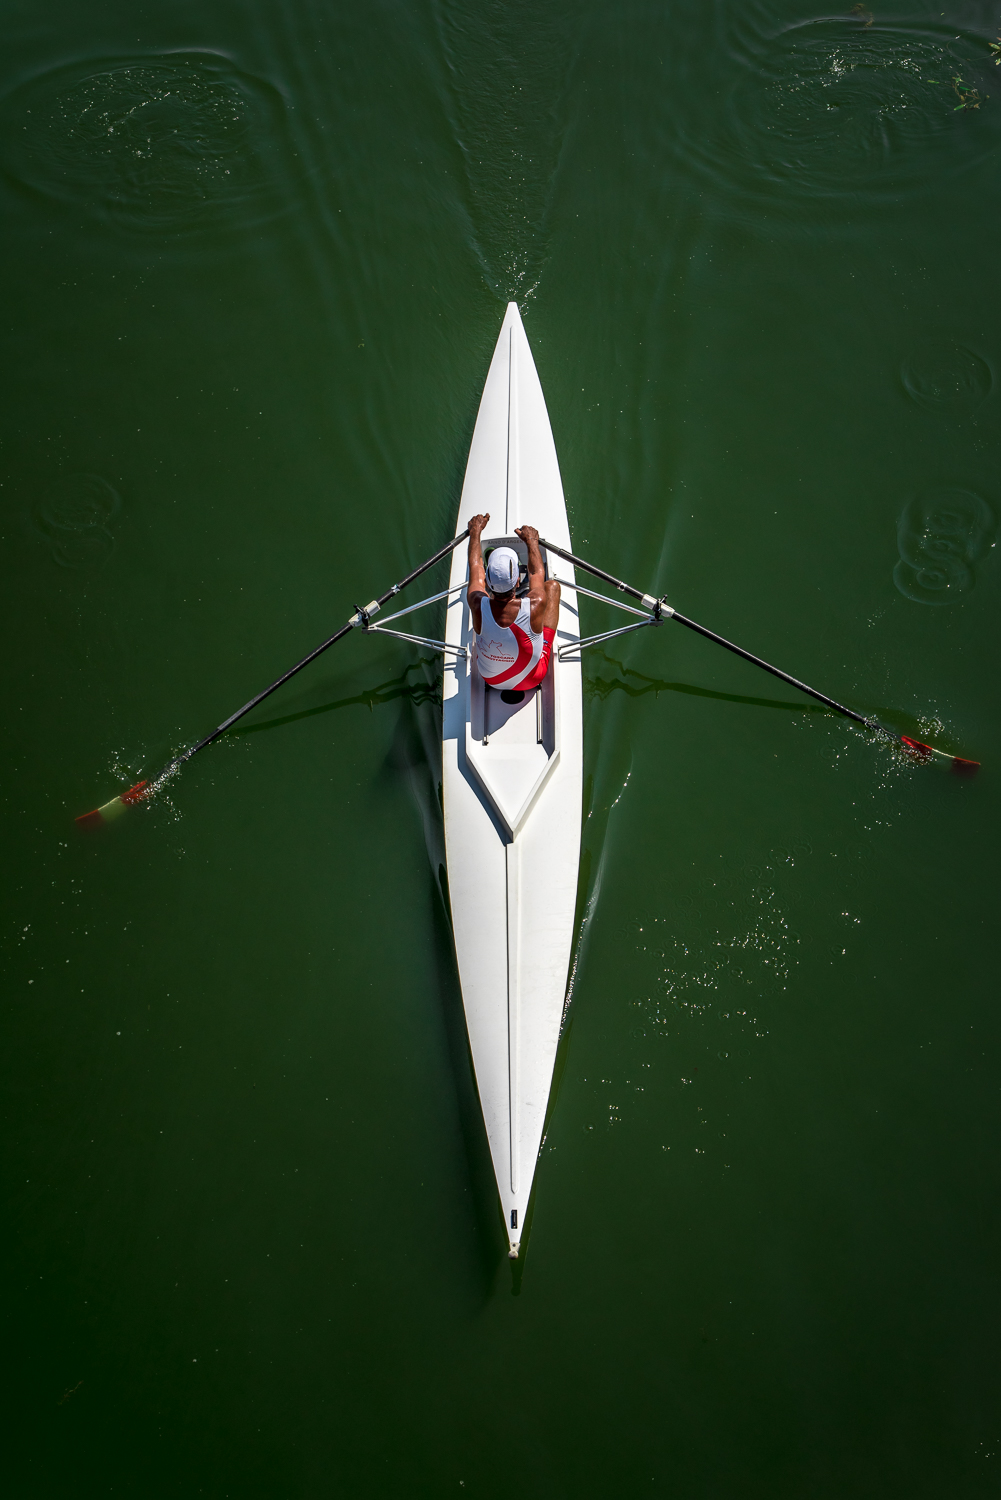 ©Ayash Basu. Looking straight on at eye level would not have captured the geometry of the kayak, I was standing on a bridge and waited for the kayak to pass below me to get this top-down shot.